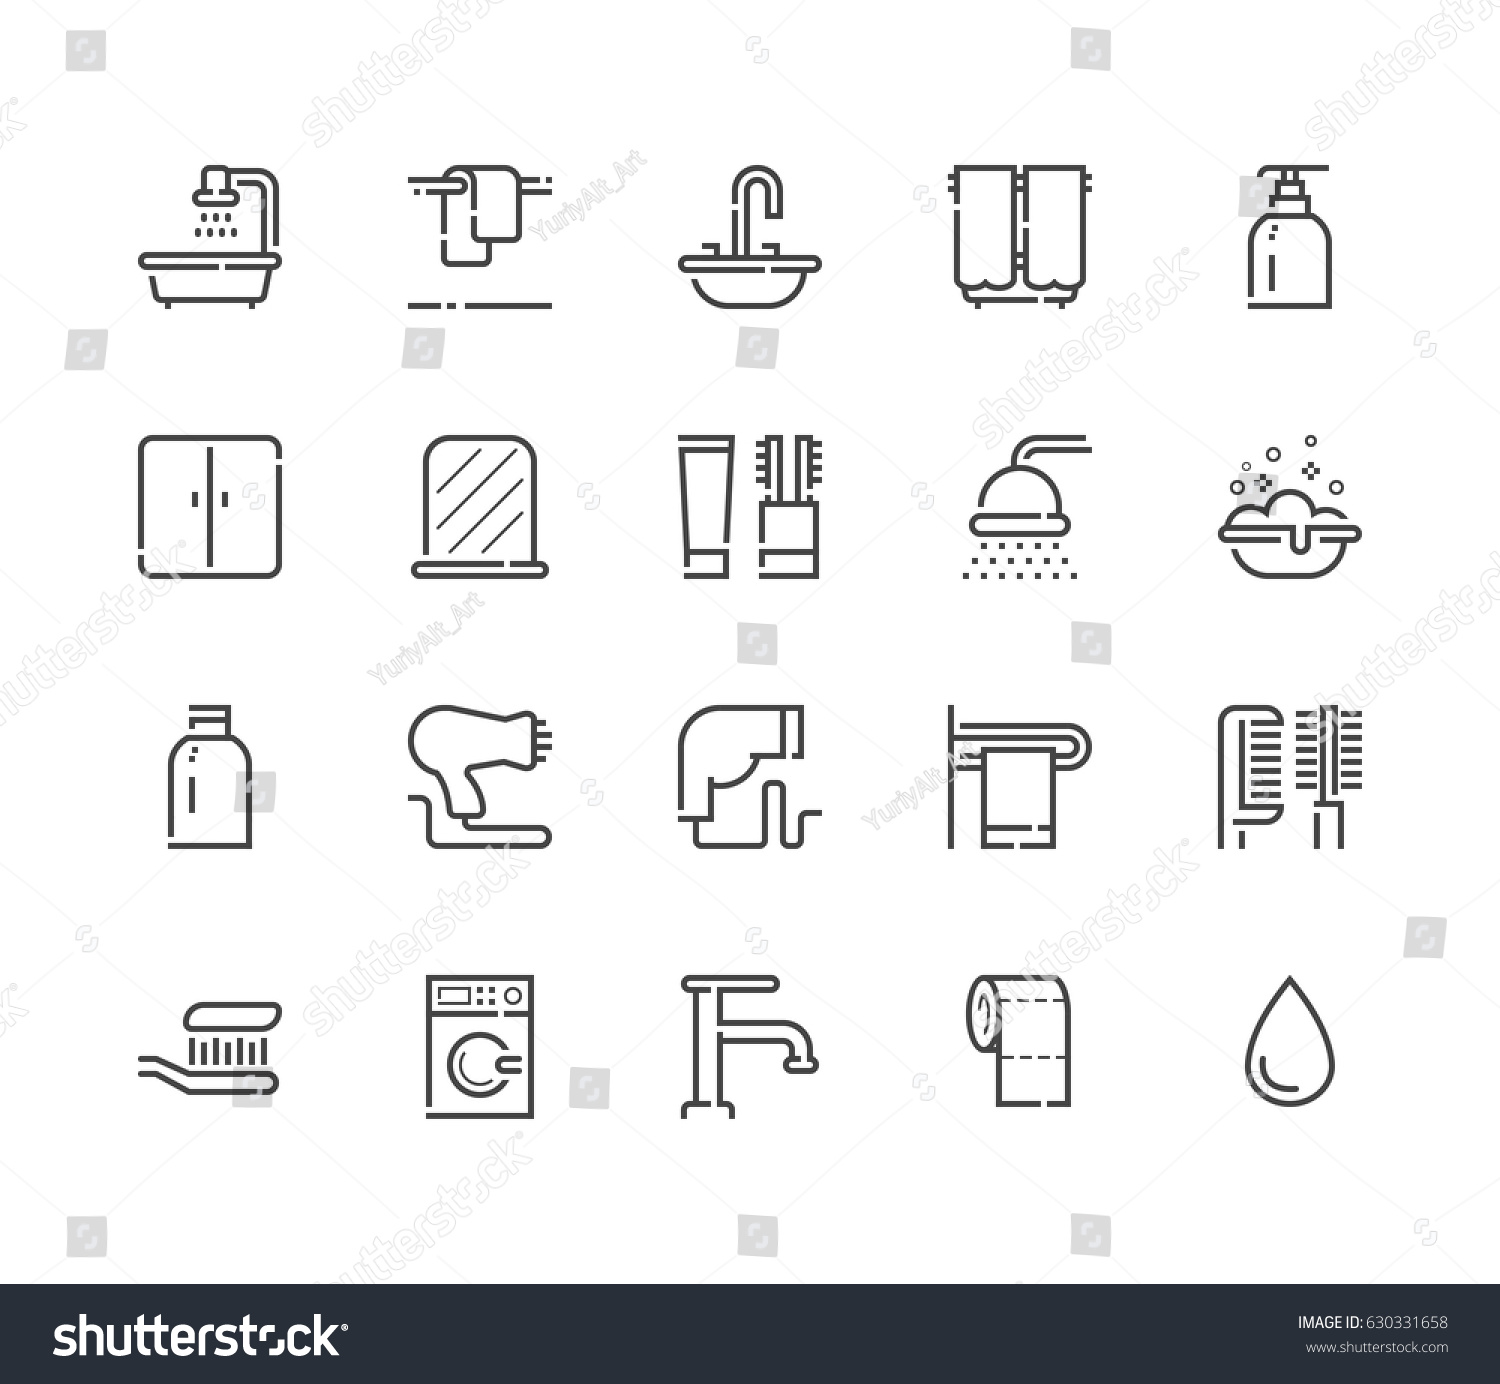 Toilet signs vector set stock images image 36323784 - Bathroom Icon Outline Vector Set 48x48 Stock Vector 630331658 Stock Vector Bathroom Icon Outline Vector Set